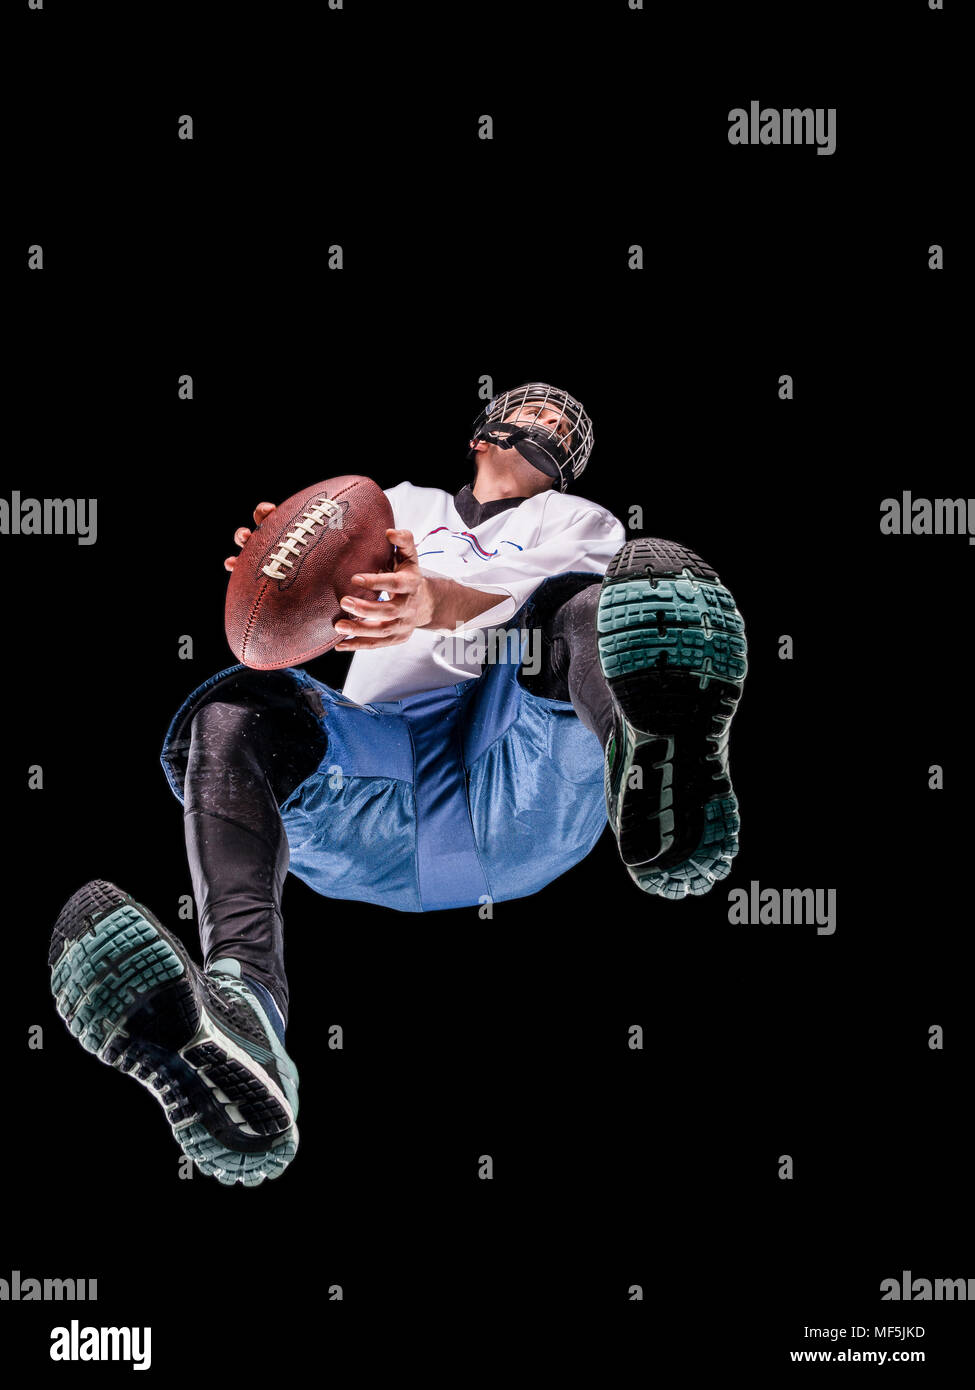 Athlete playing football, view from below - Stock Image